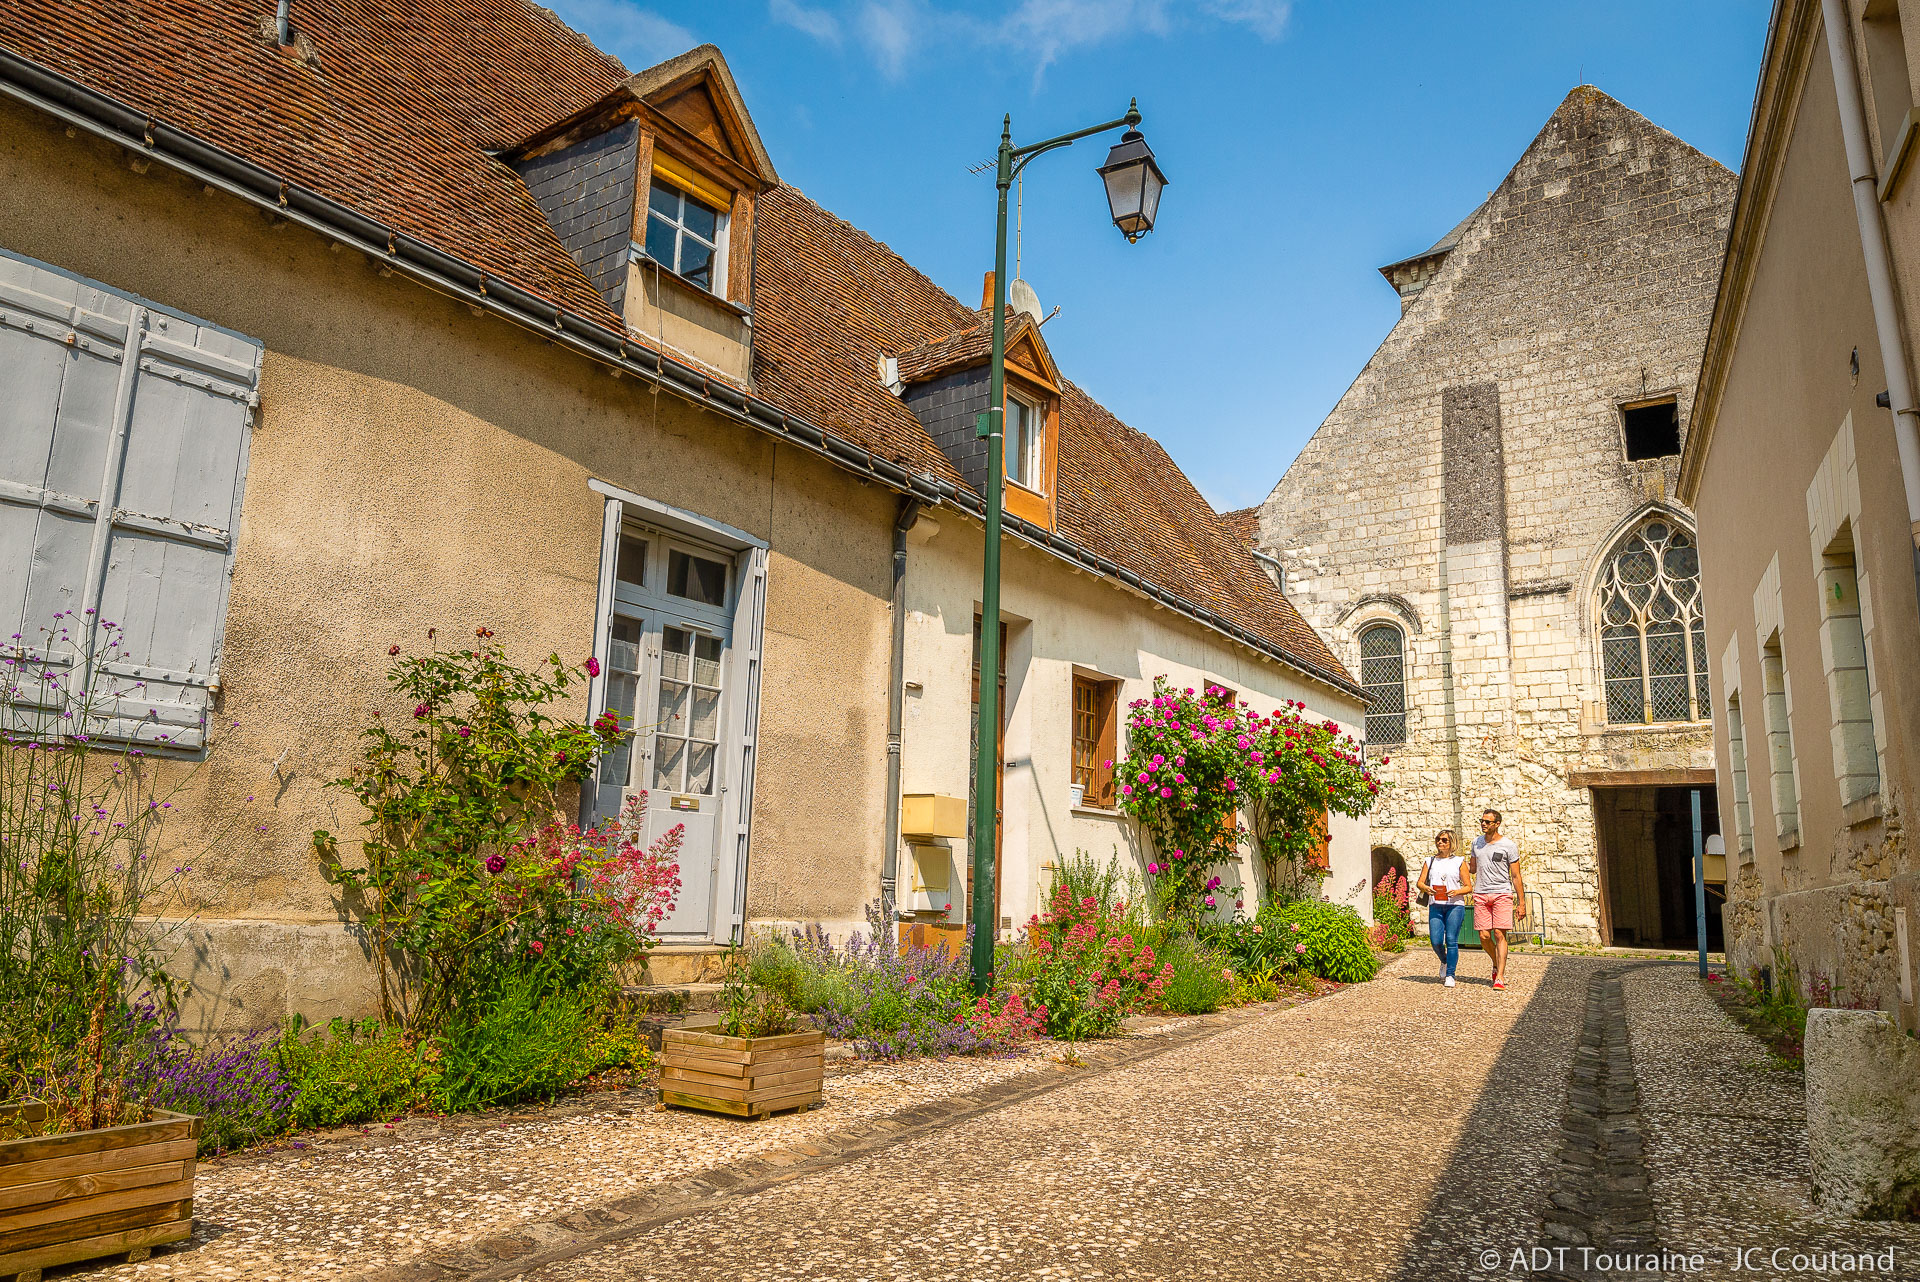 Through the streets of Beaulieu-lès-Loches